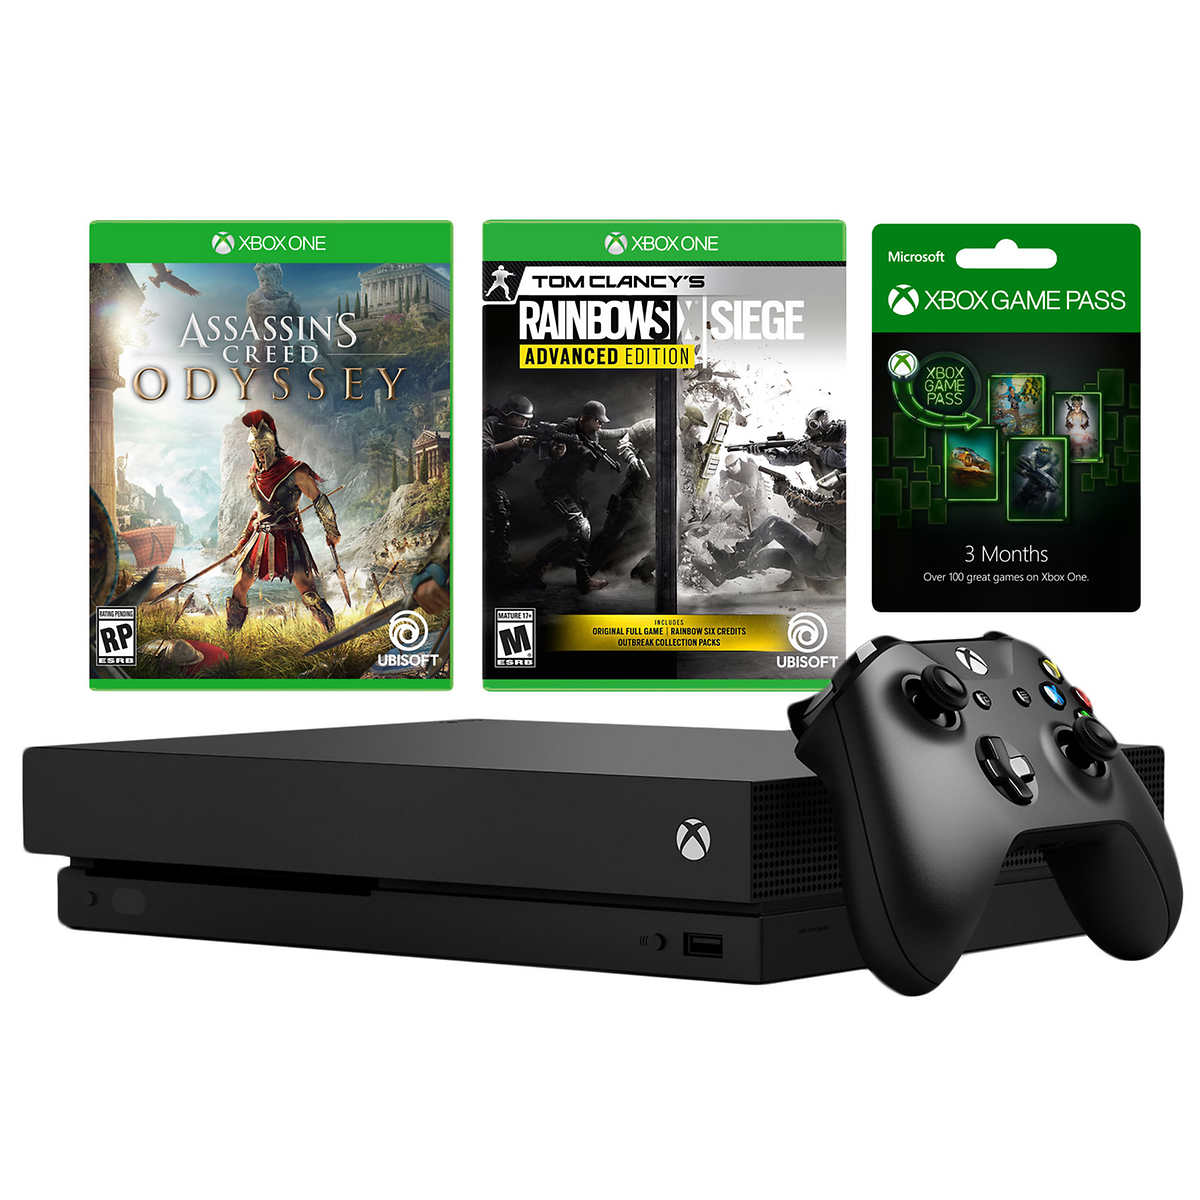 XBOX One X 1TB Bundle with 2 Games + 3-Month Game Pass